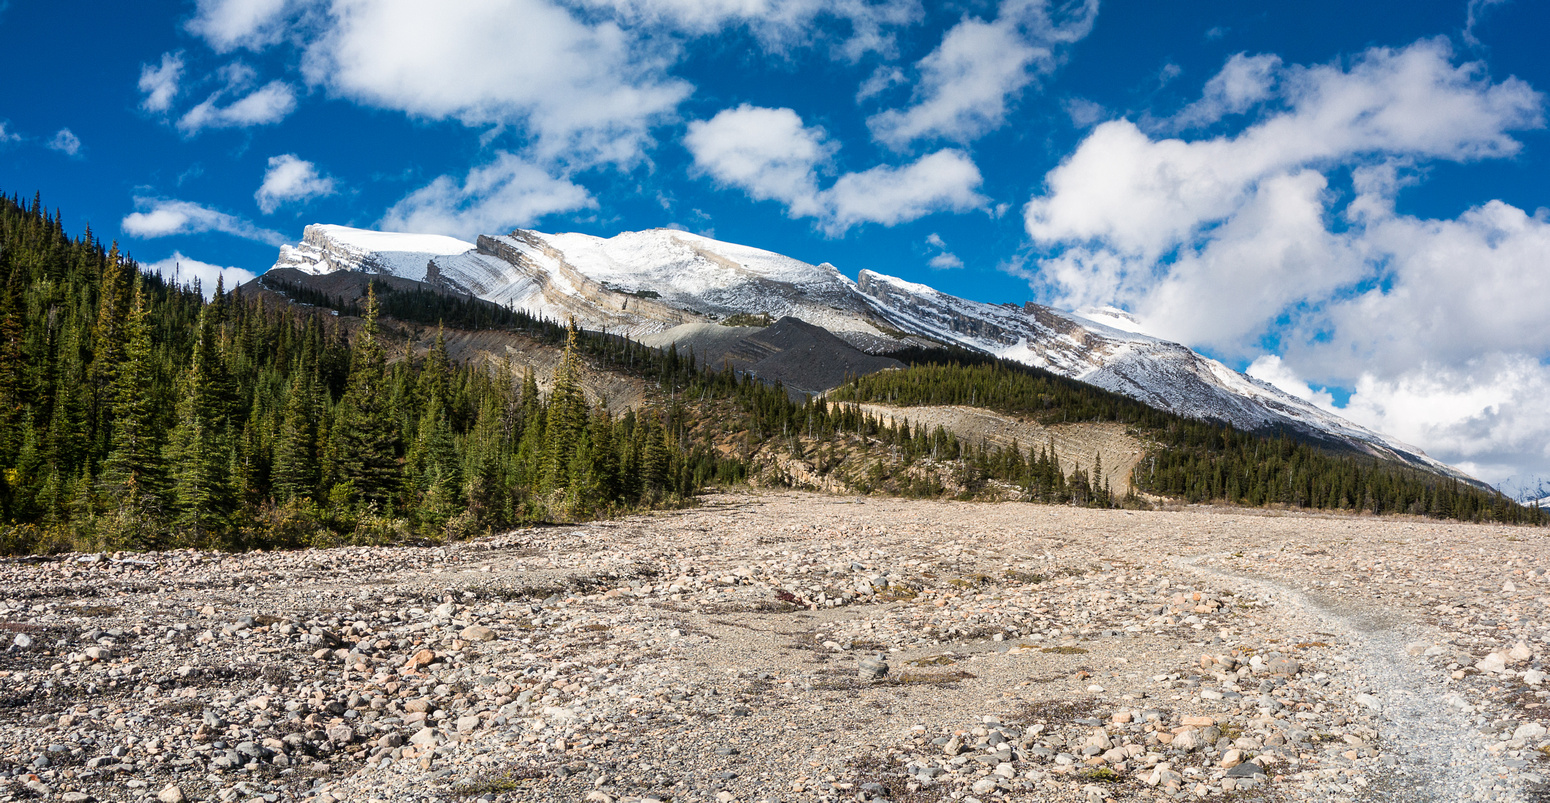 The trail opens up considerably before getting to the Marmot campground - Berg Lake is OOS to the right here.